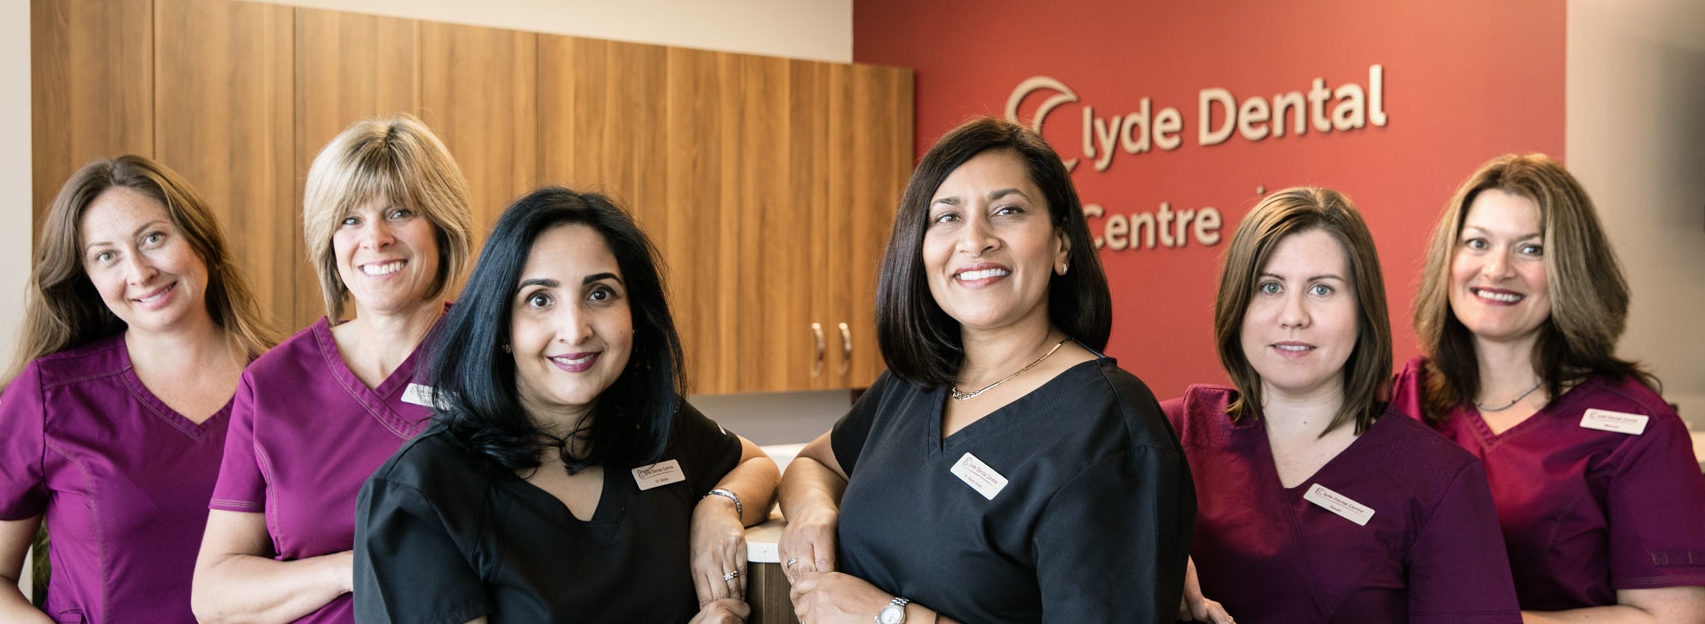 ClydeDental_00523